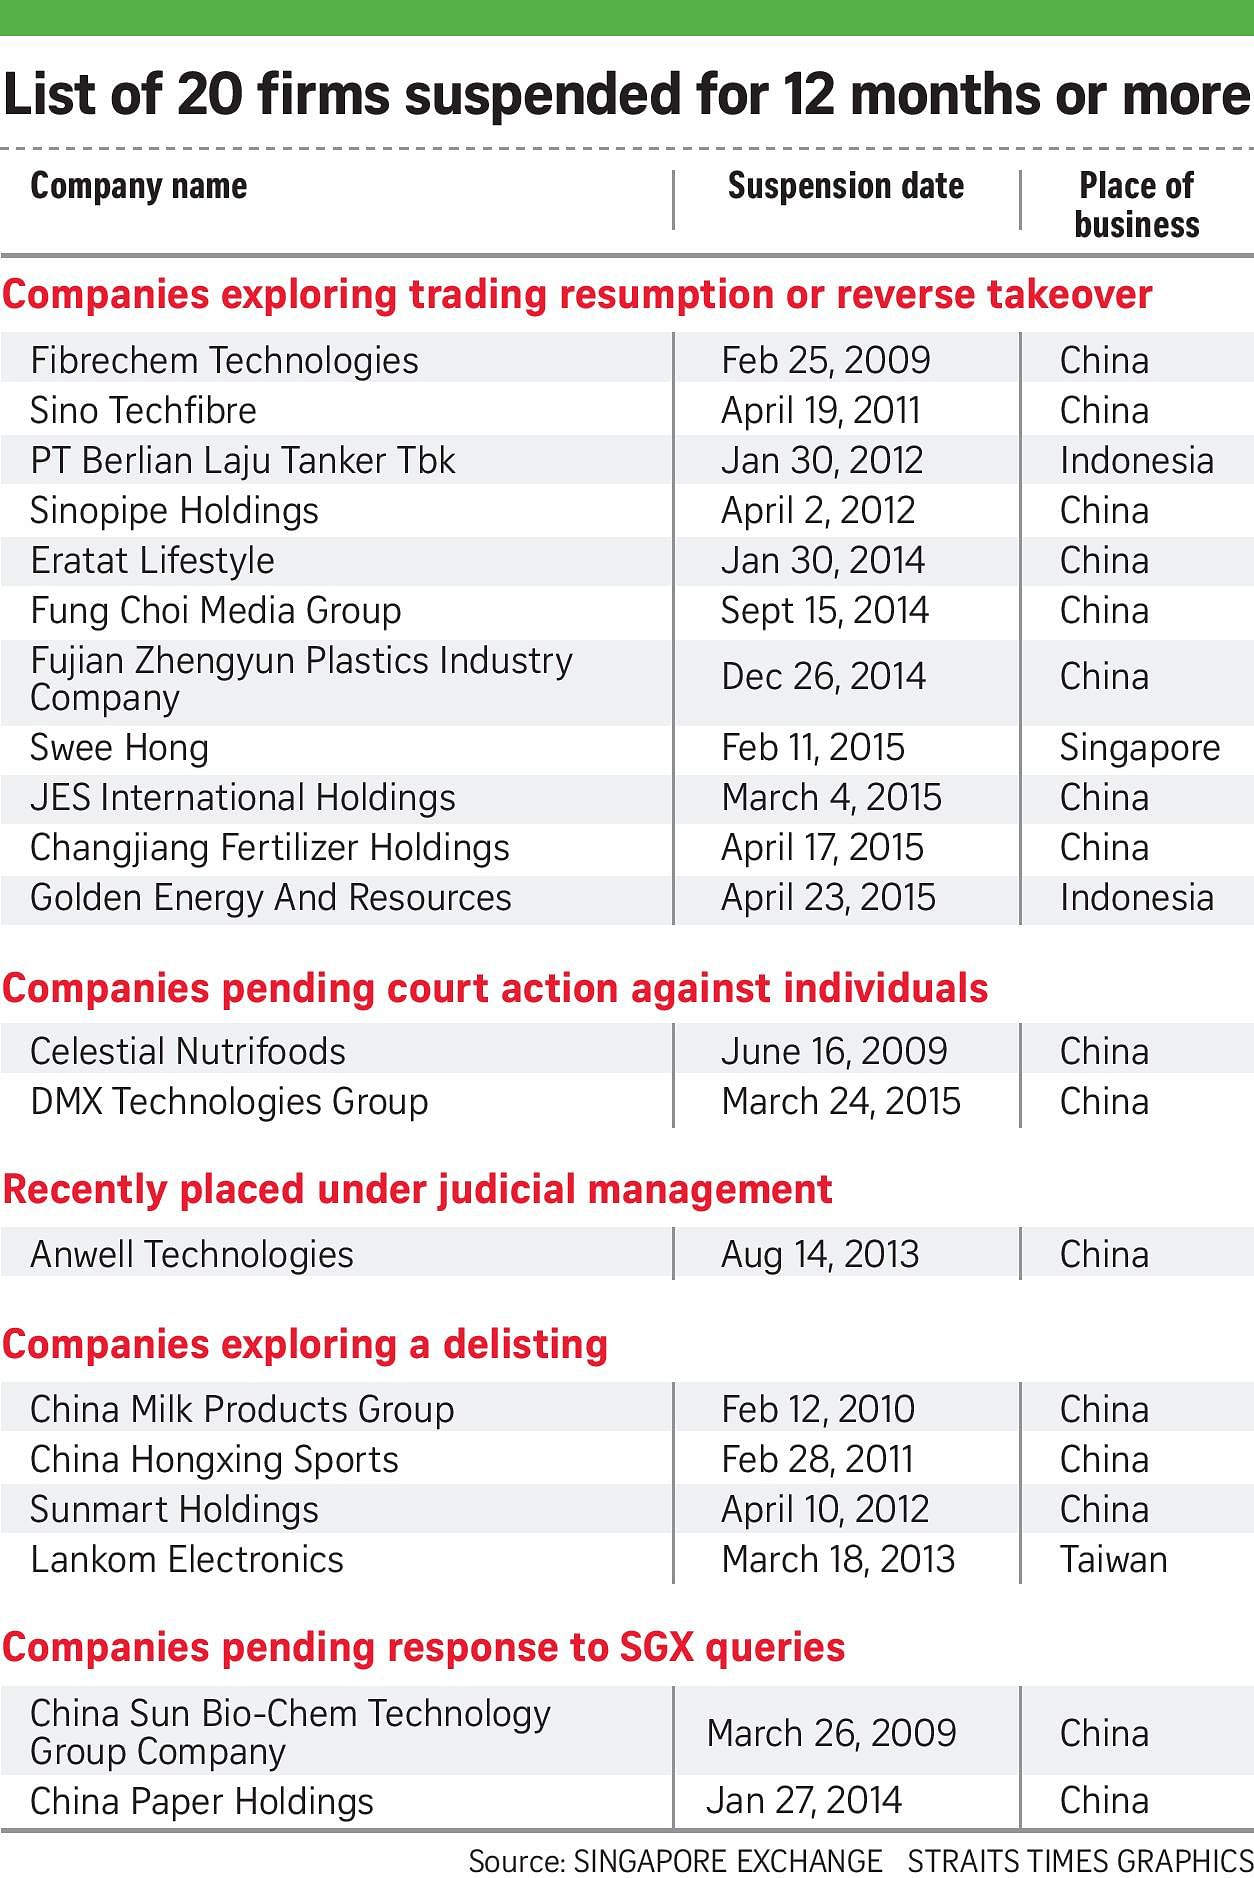 sgx suspension is not the end of companies companies markets